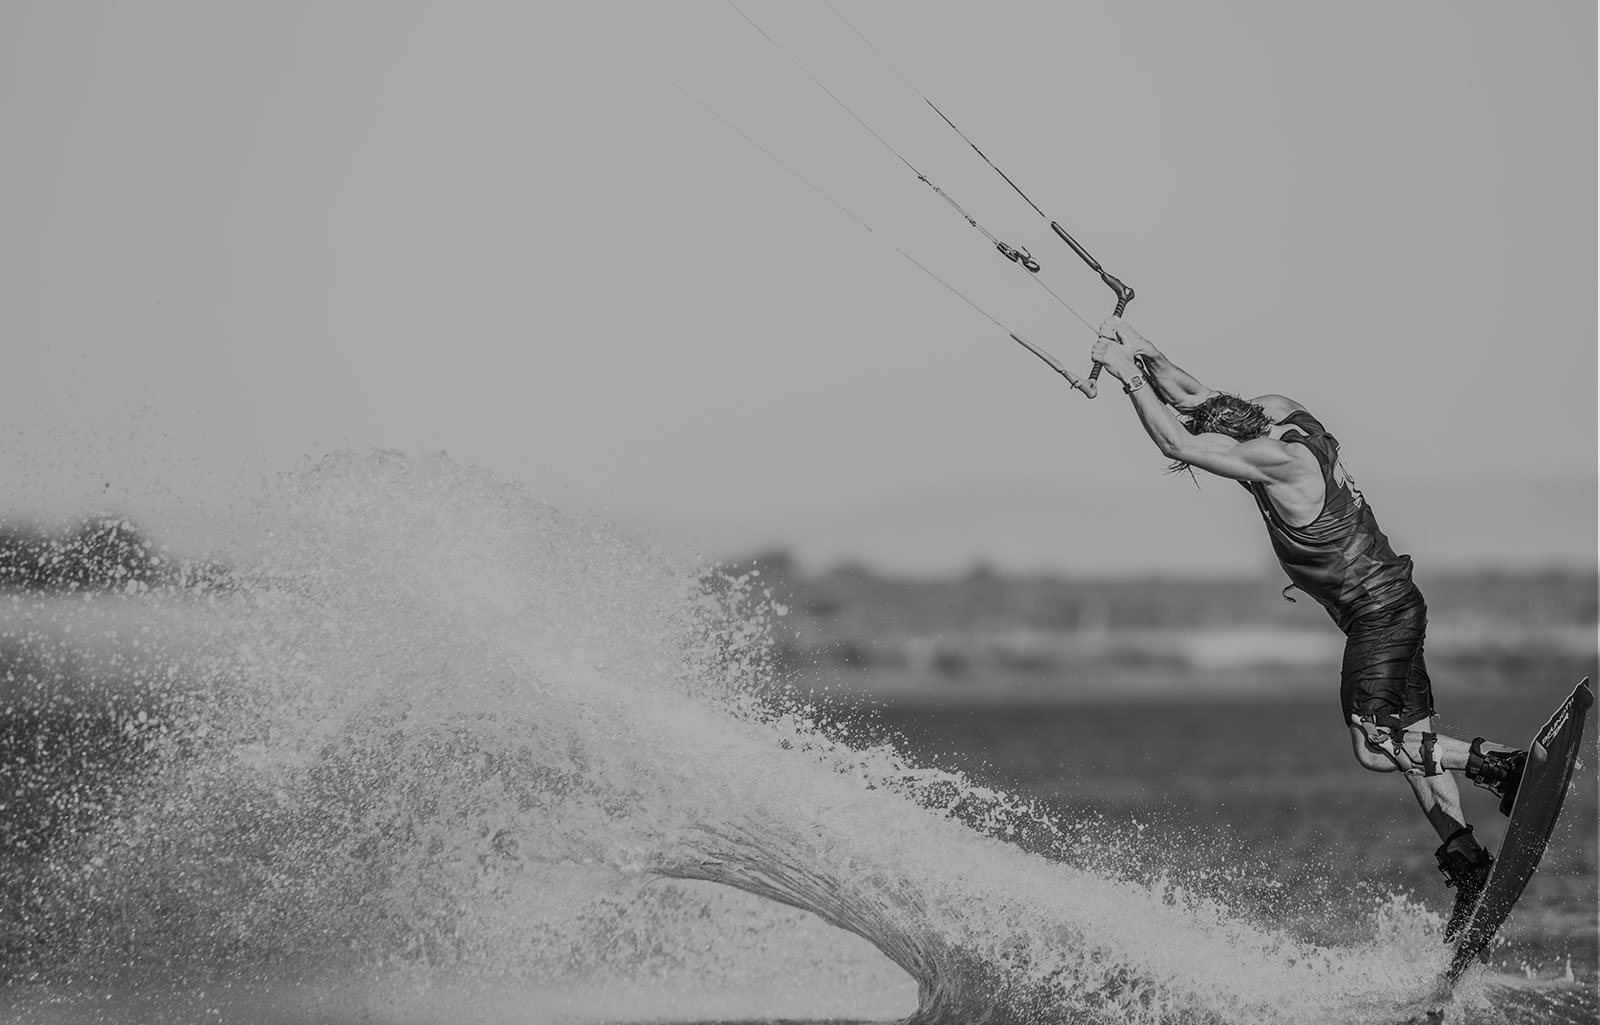 Banner image of a man kiteboarding